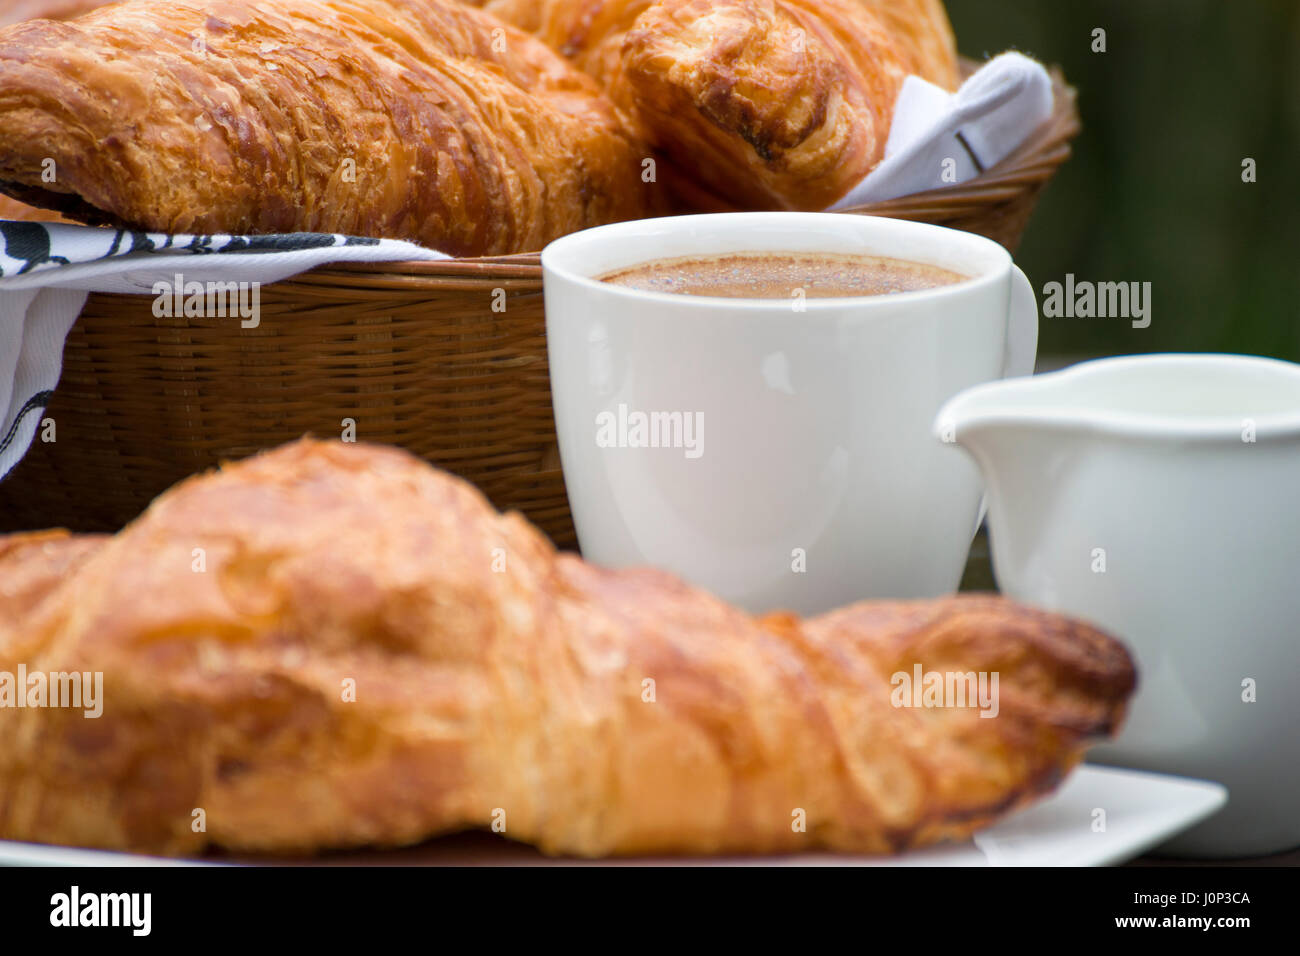 Coffee, milk and croissants - Stock Image